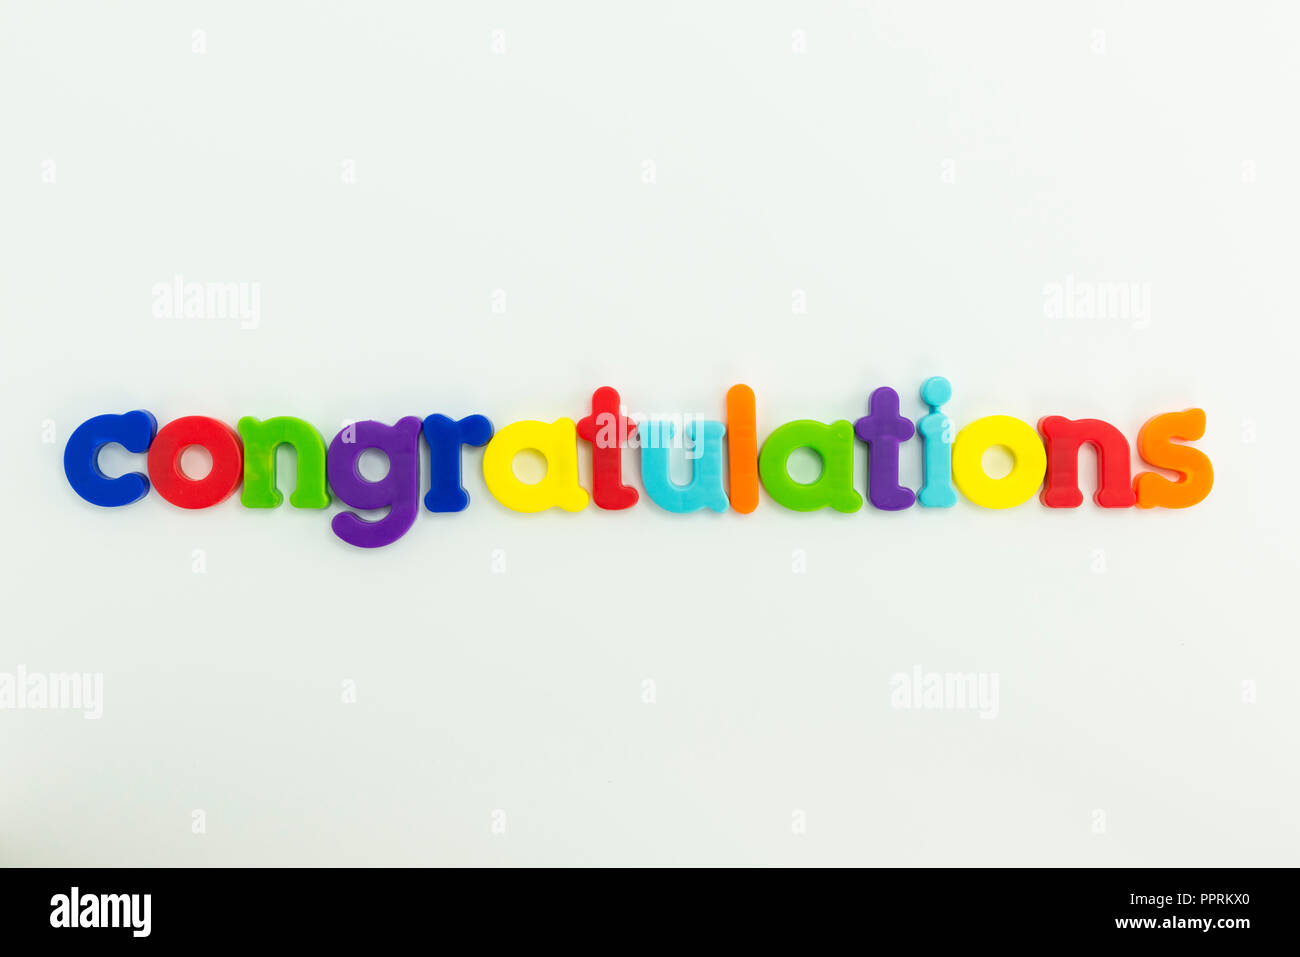 Congratulations spelled out with colourful children's fridge magnets - Stock Image